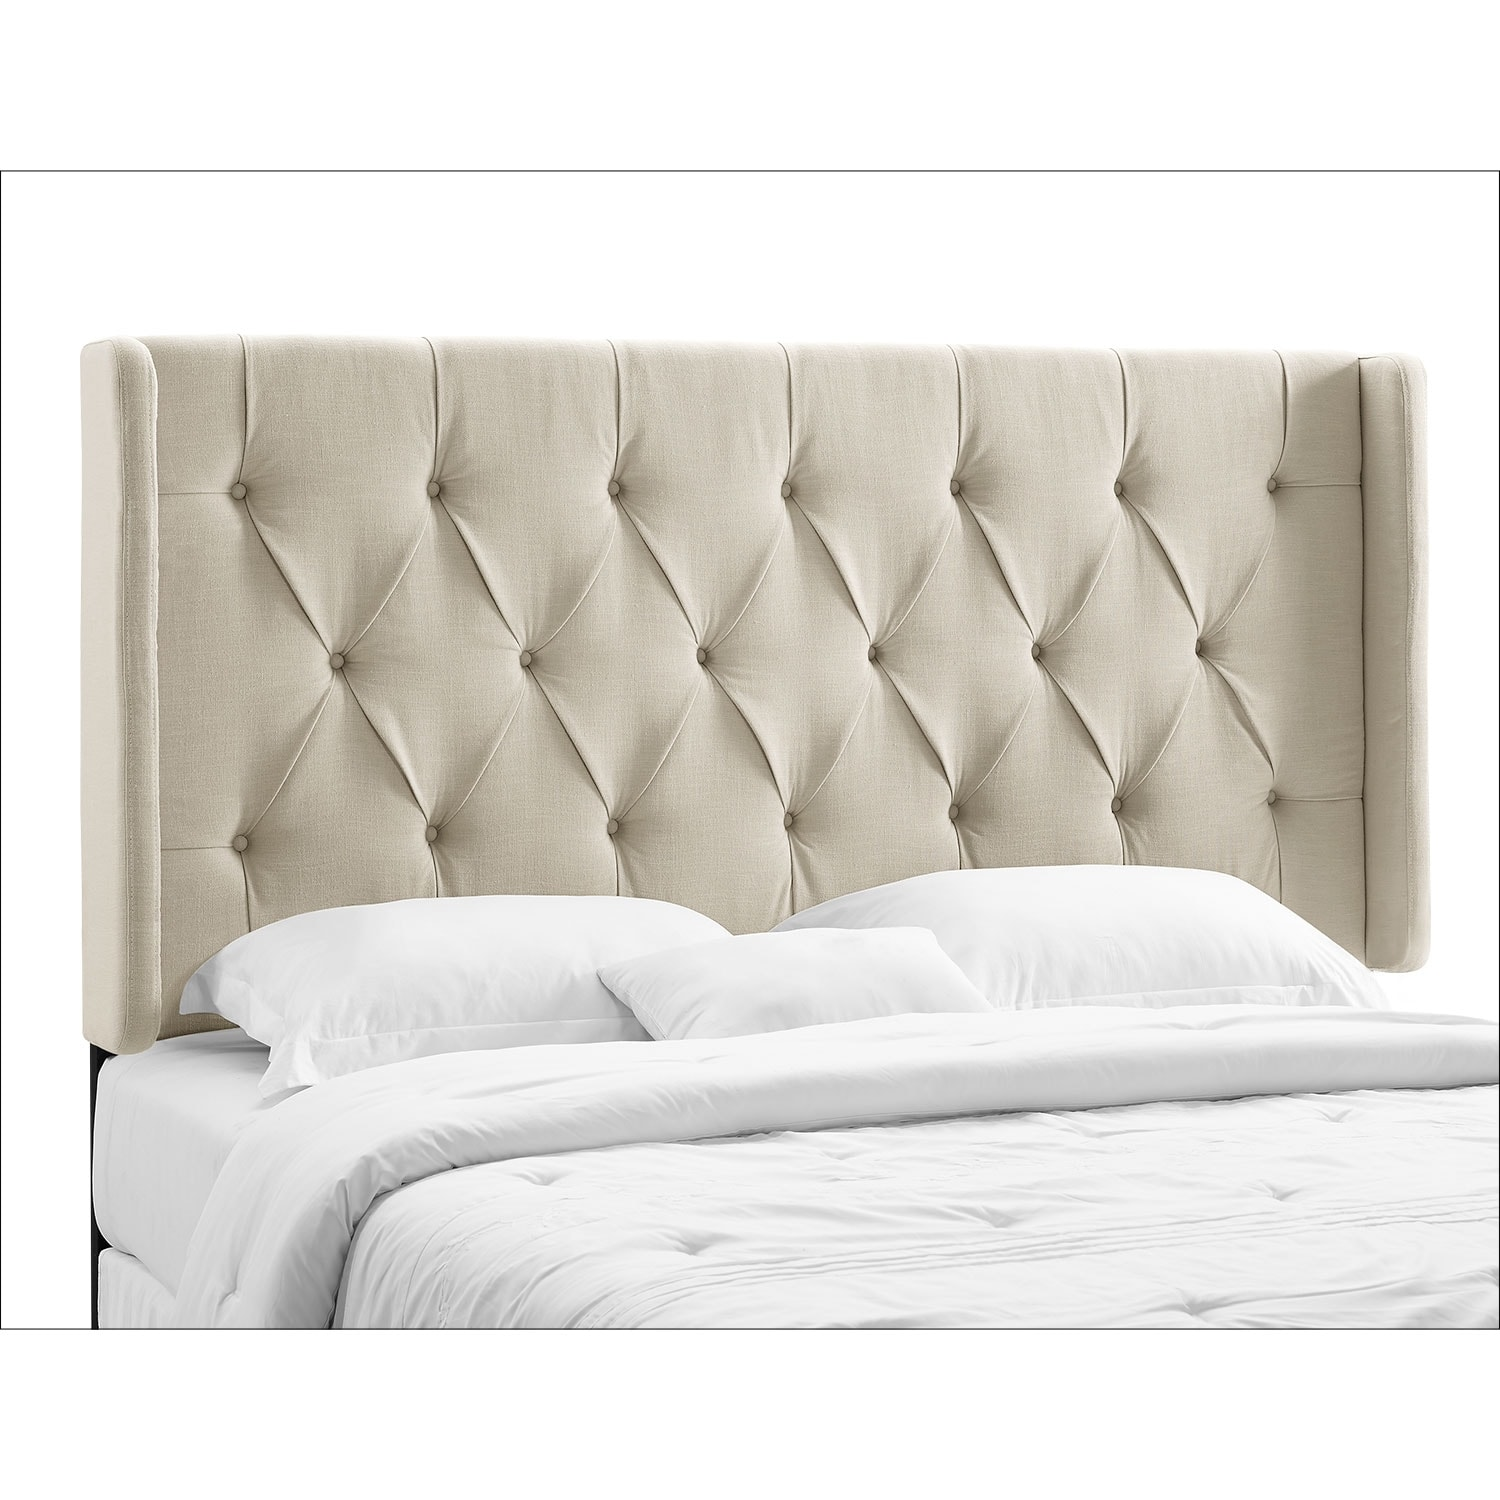 Winston cream king california king headboard value city California king headboard